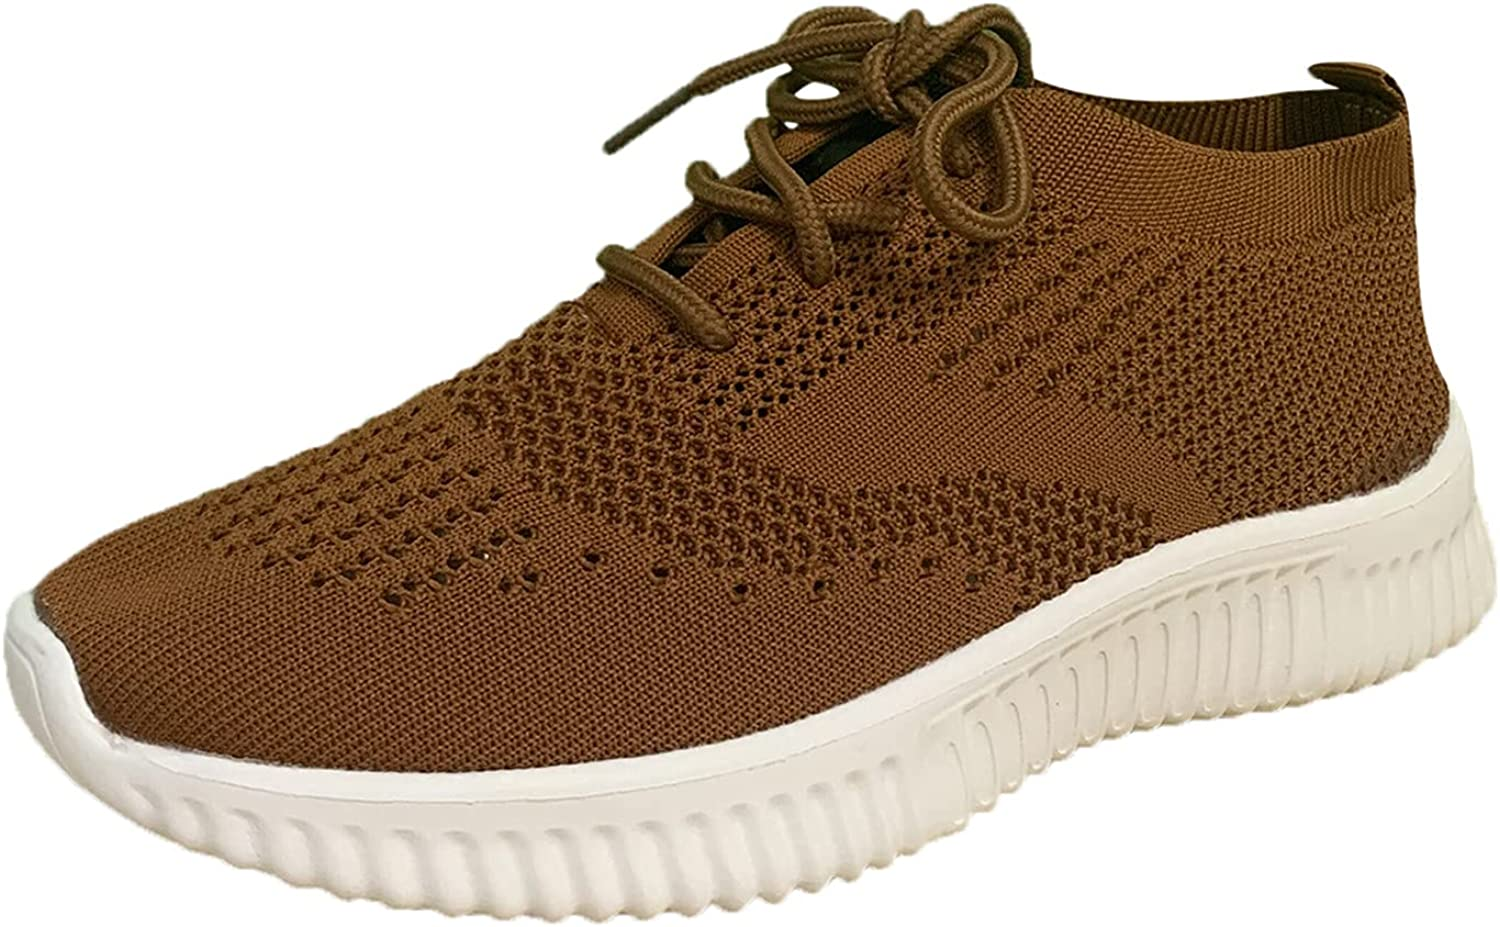 USYFAKGH High Max 83% OFF material Athletic Shoes for Women Walking - Sock Sneakers